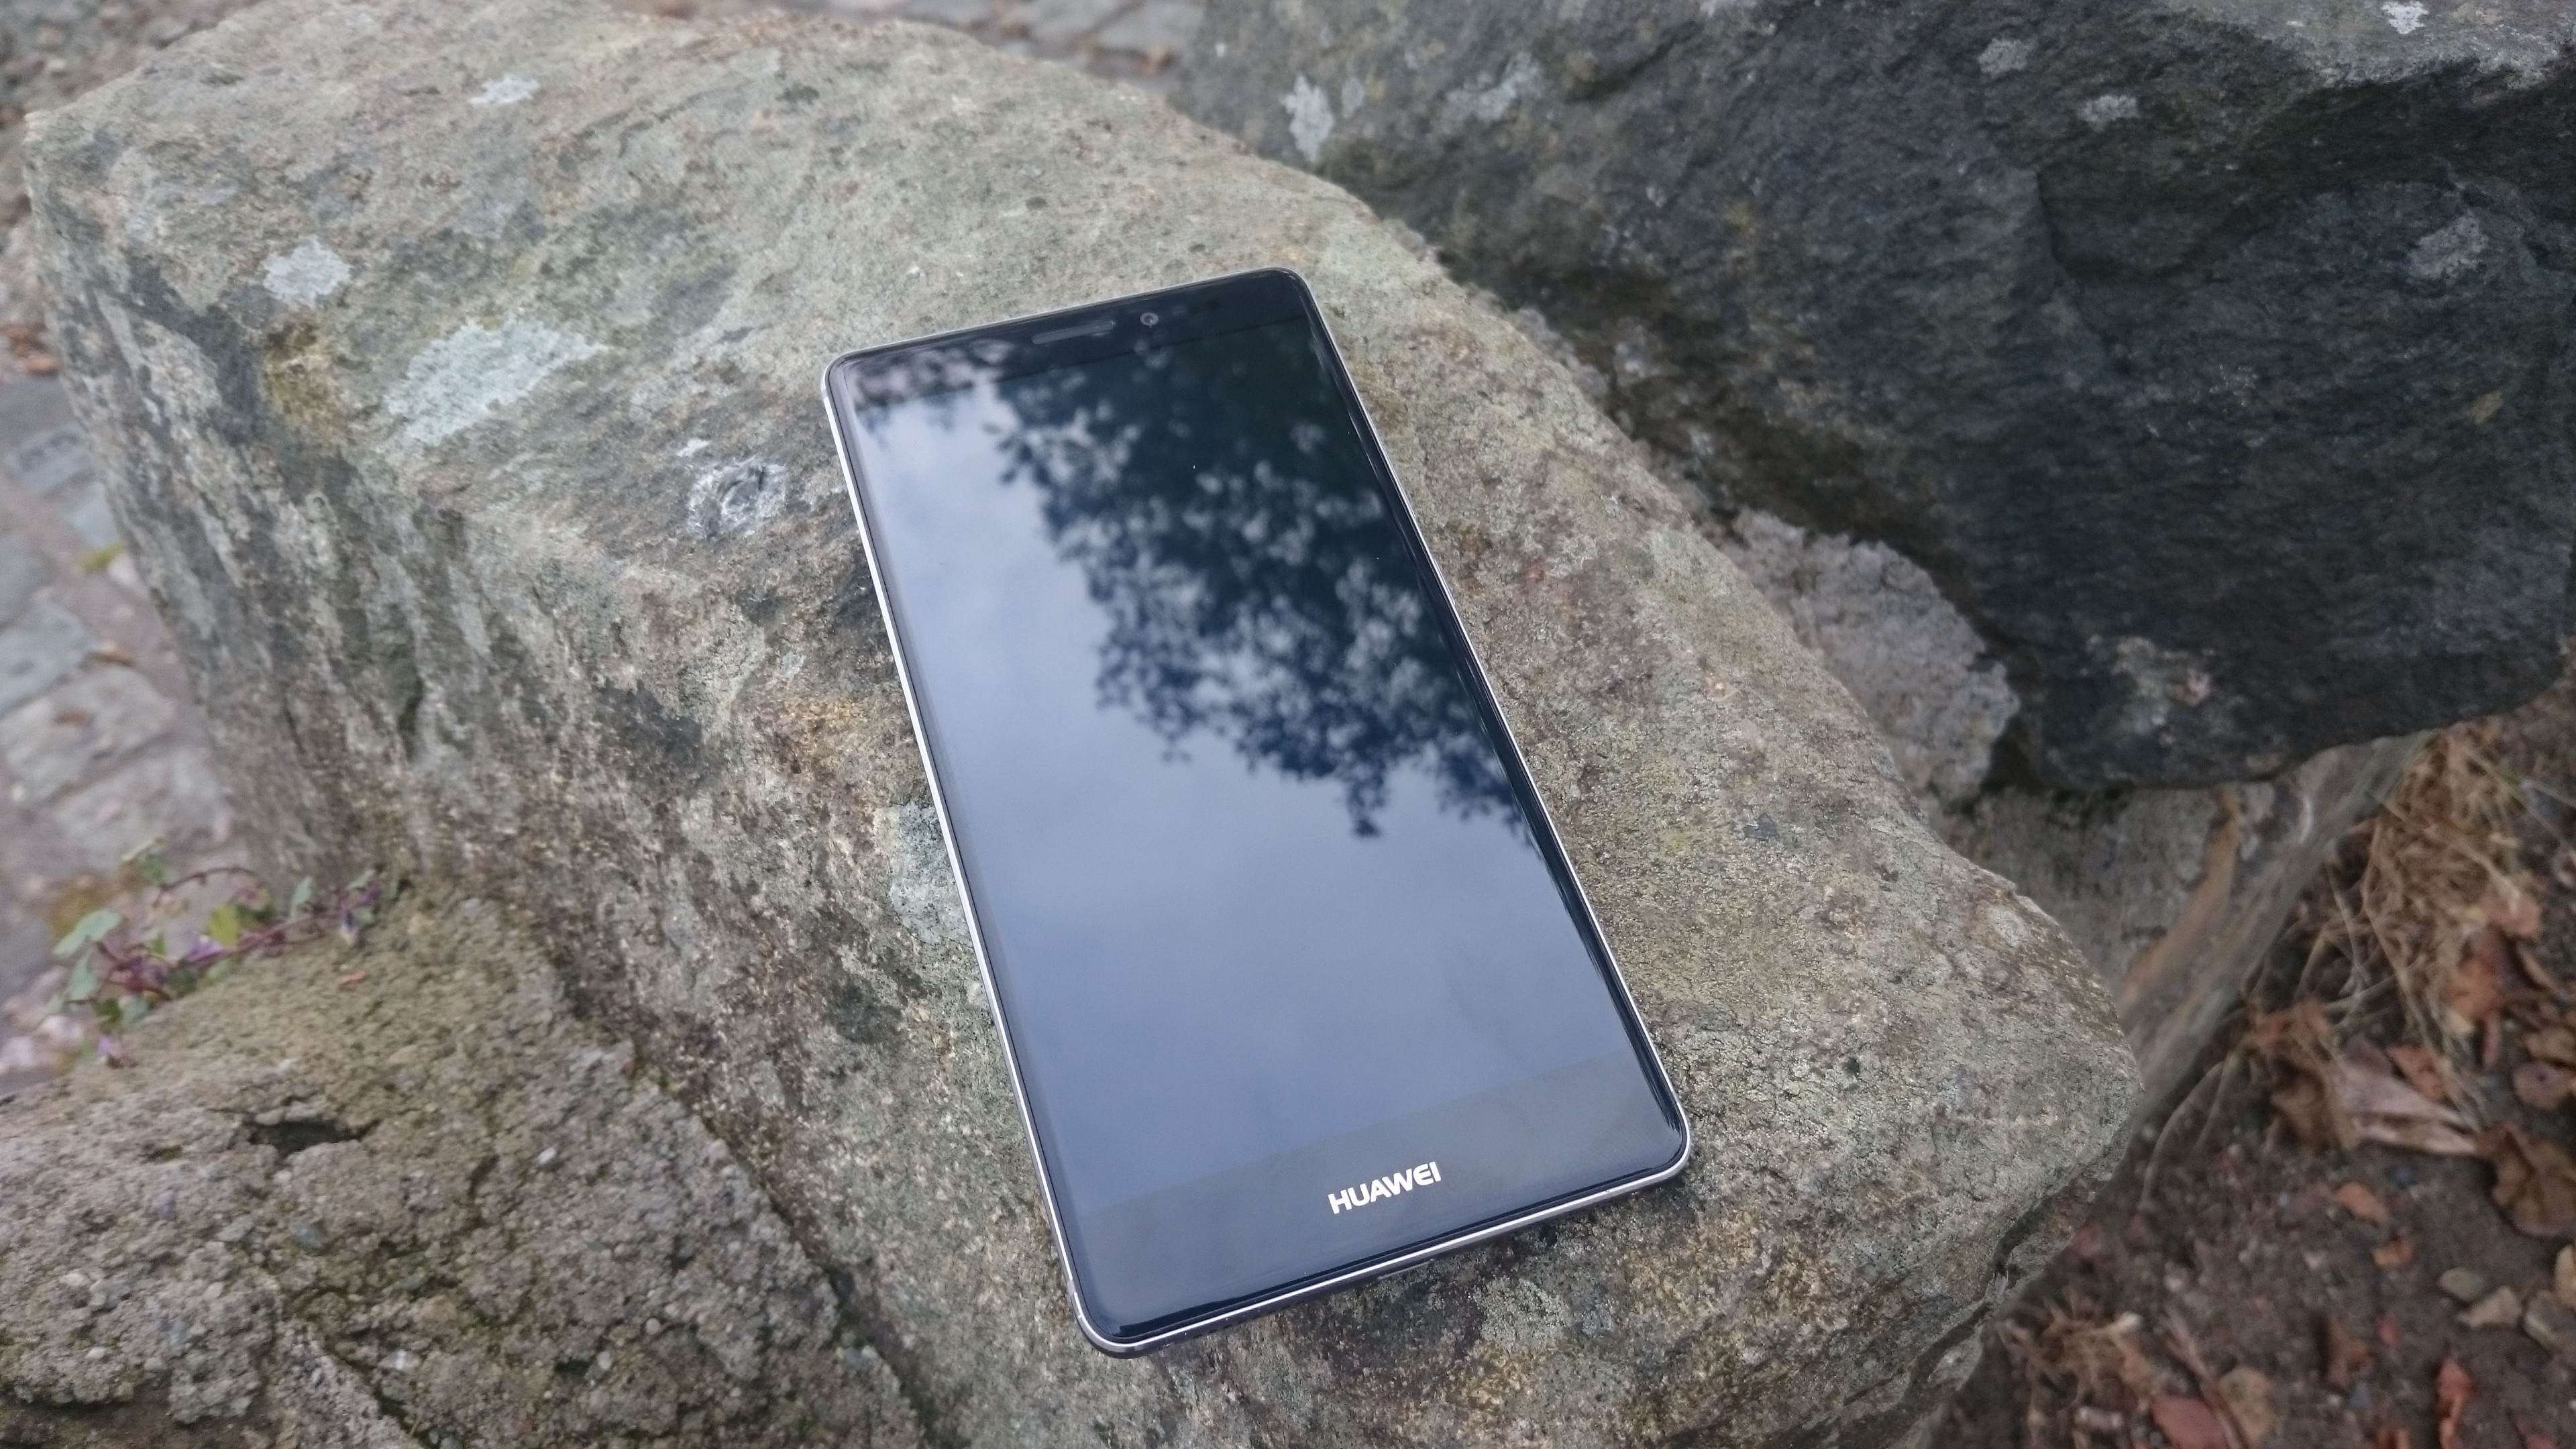 Huawei Mate S - Review - Coolsmartphone